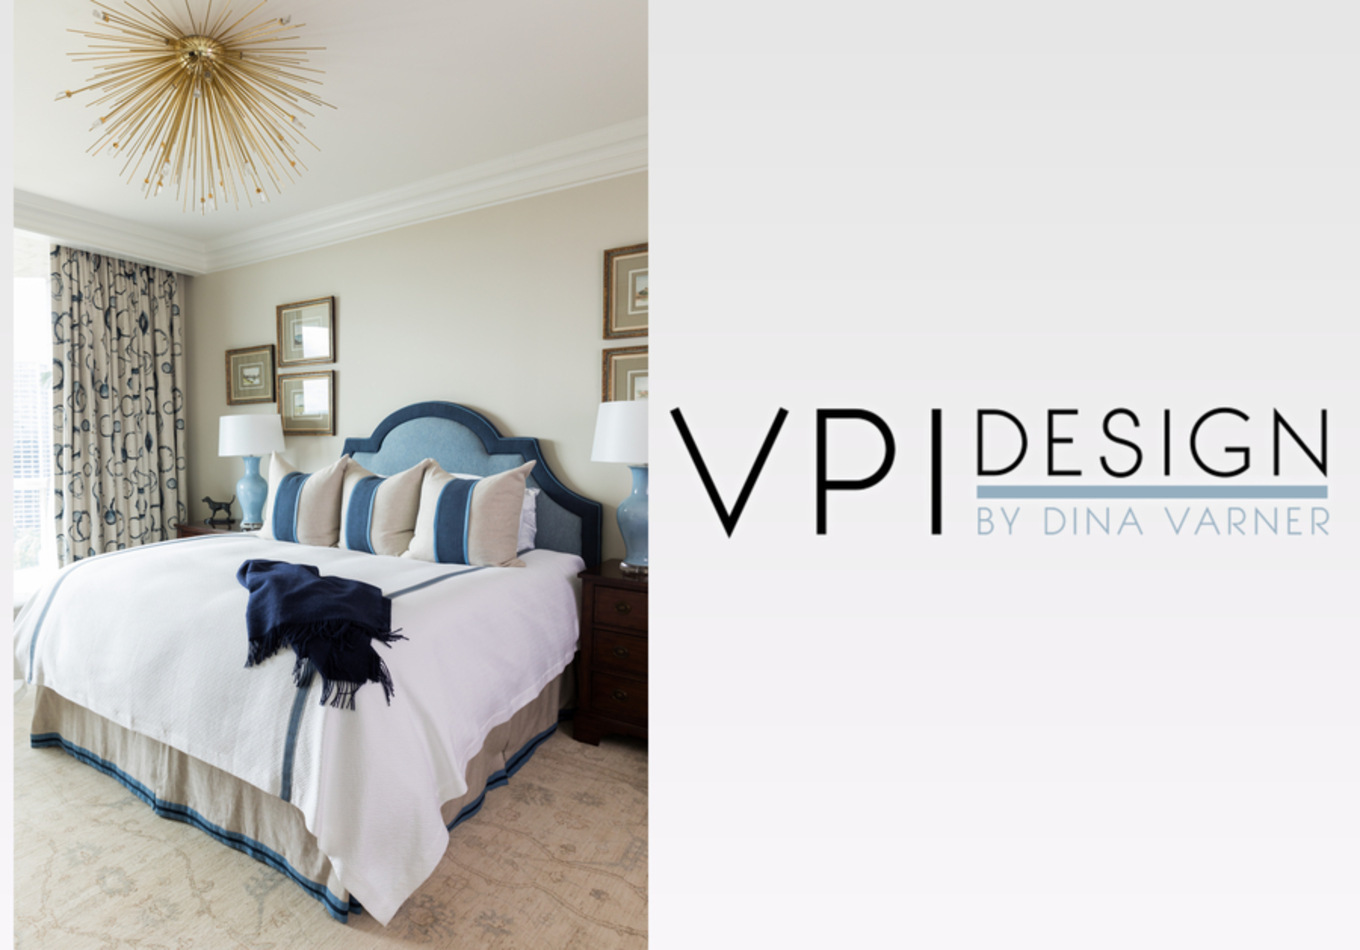 Top Sea Island Luxury Interior Designer Vpi Design Weighs In On The Impact Linens Can Have On Bedroom Design Morningstar